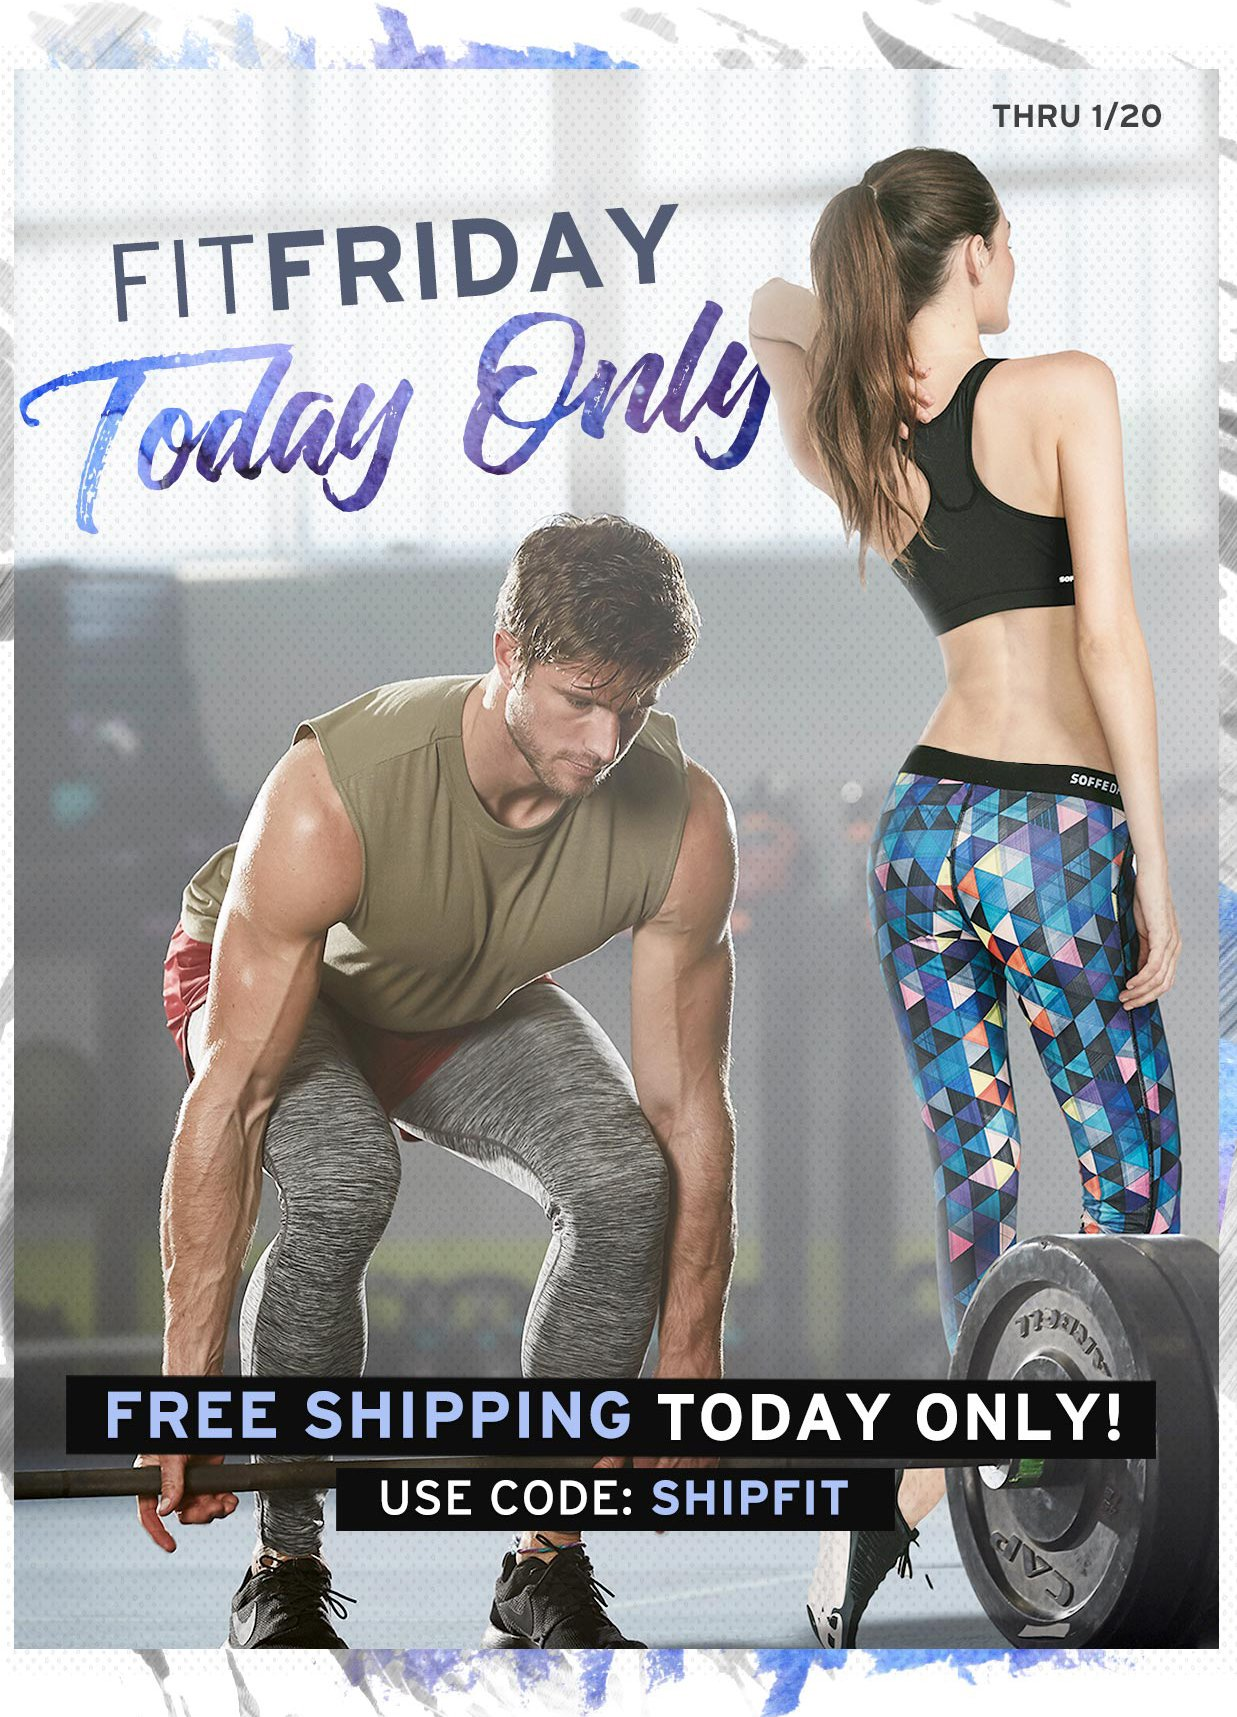 Free Shipping on any size order. TODAY ONLY! Use code SHIPFIT thru 1/20.